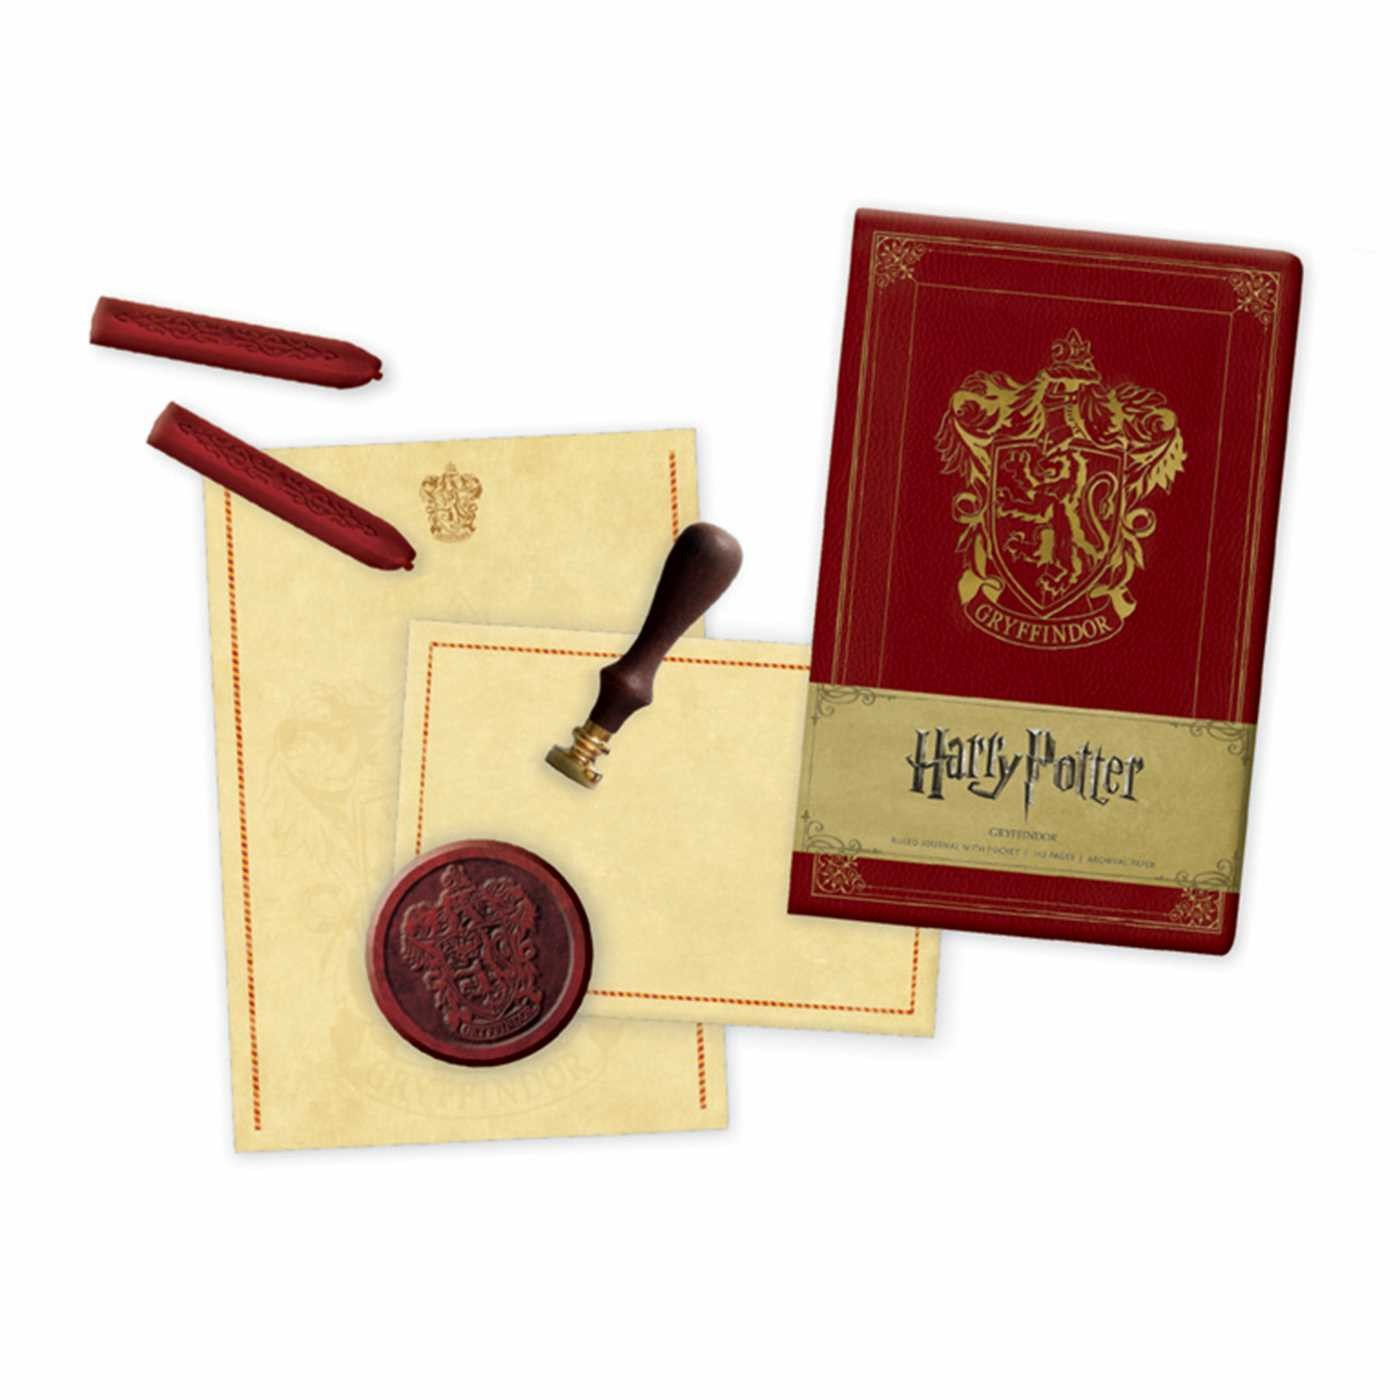 Harry Potter Book Gift Set : Harry potter gryffindor deluxe stationery set book by